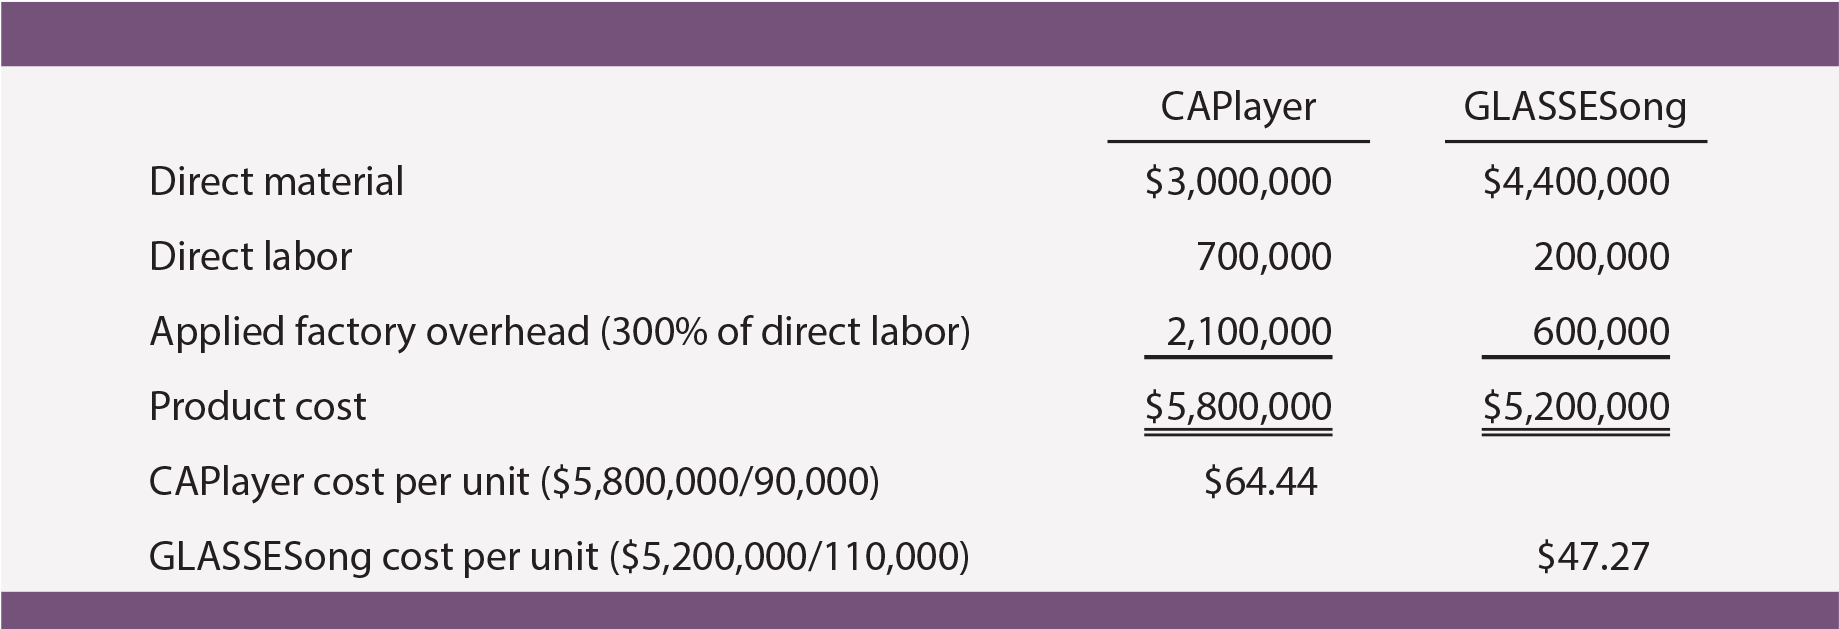 Cost of Production Analysis